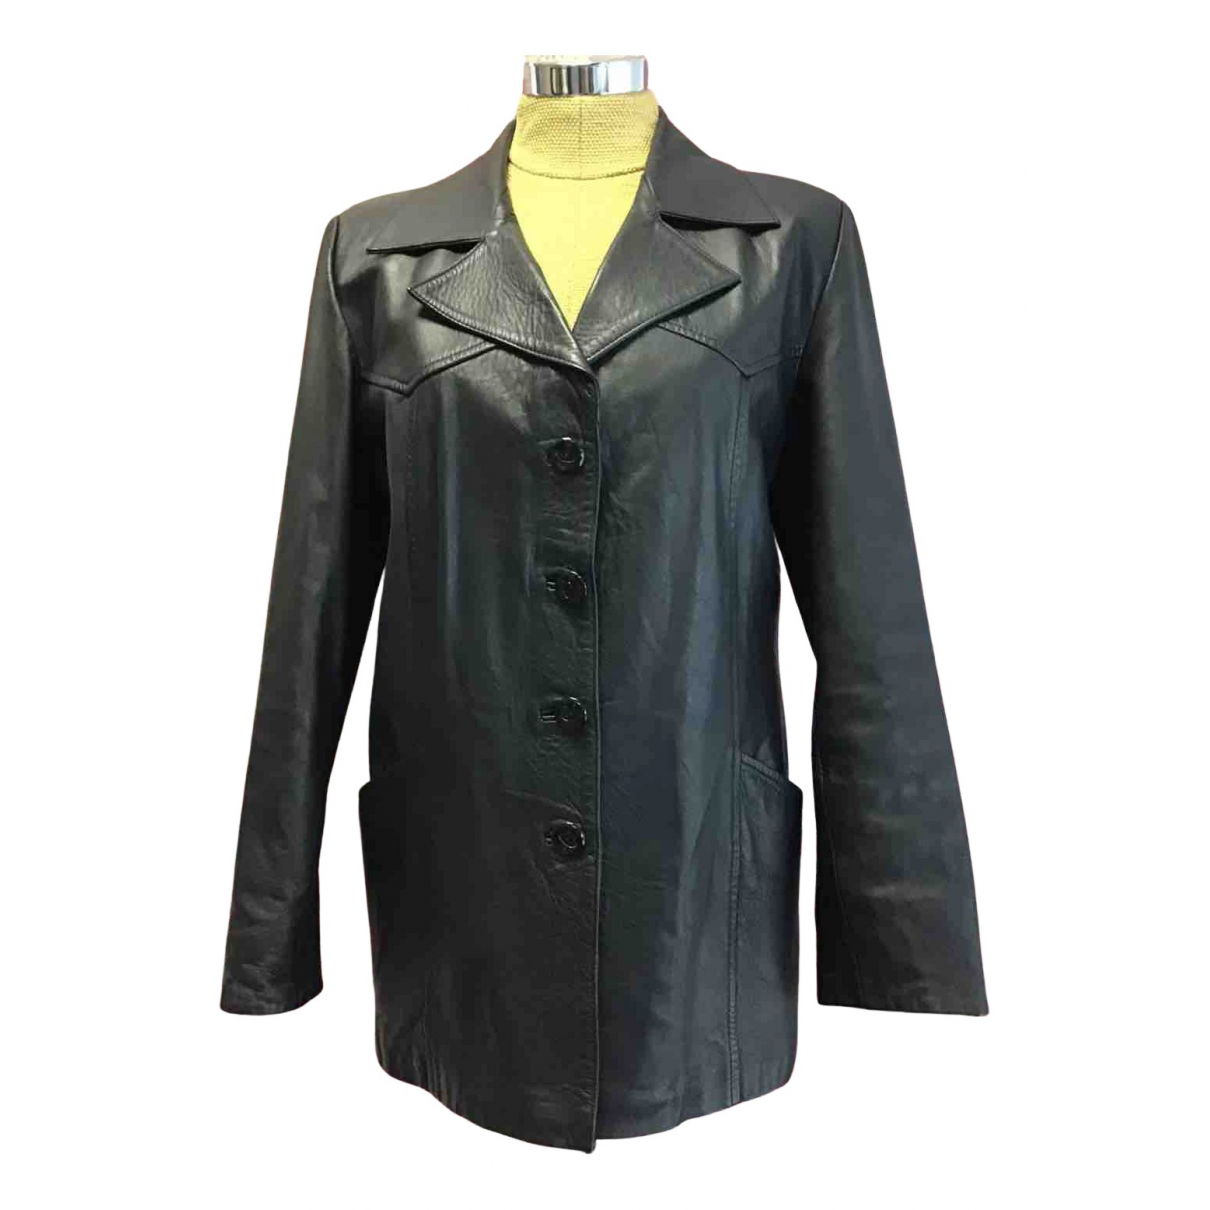 Gianni Versace N Black Leather Leather jacket for Women S International